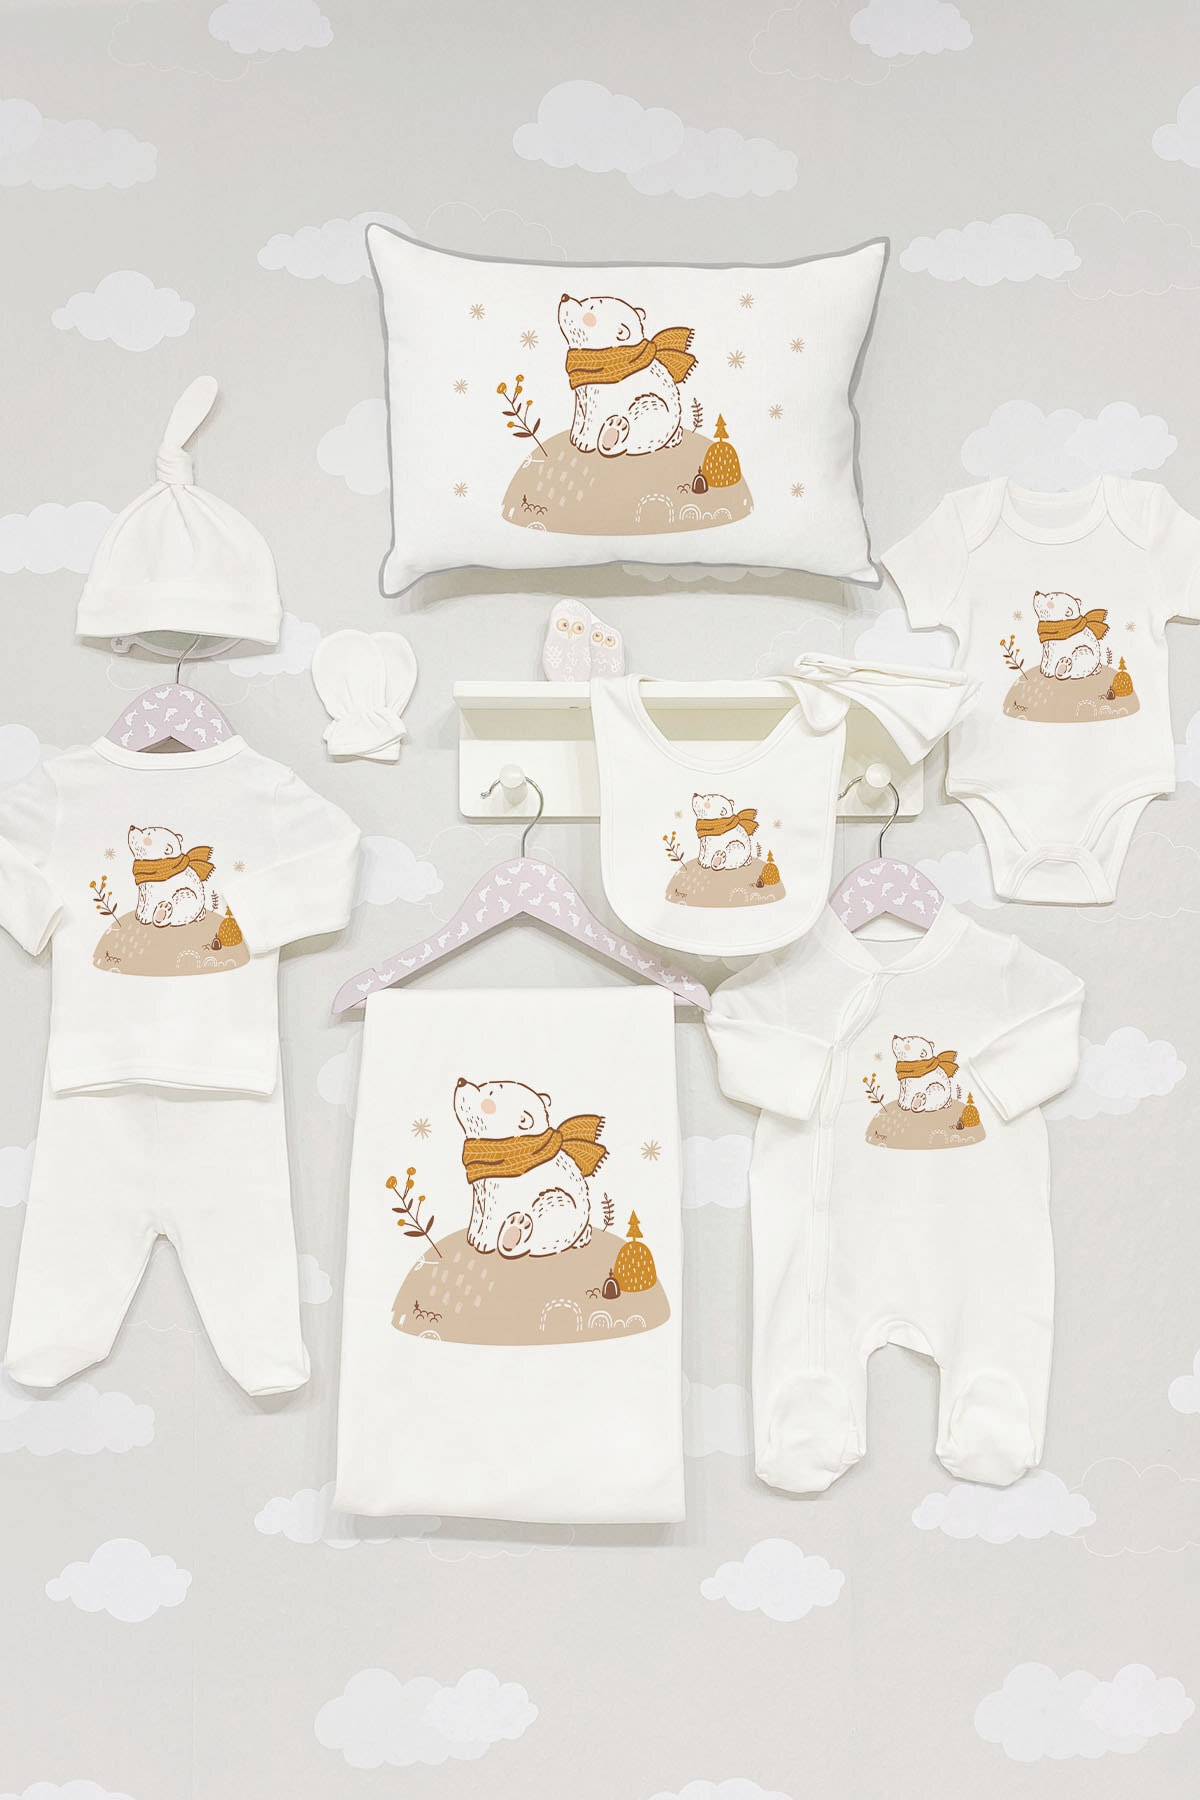 Cotton Organic Baby Newborn Personalized Outfit Clothing 11pcs Hospital Custom Fabric Antibacterial Babies Healthy Safe